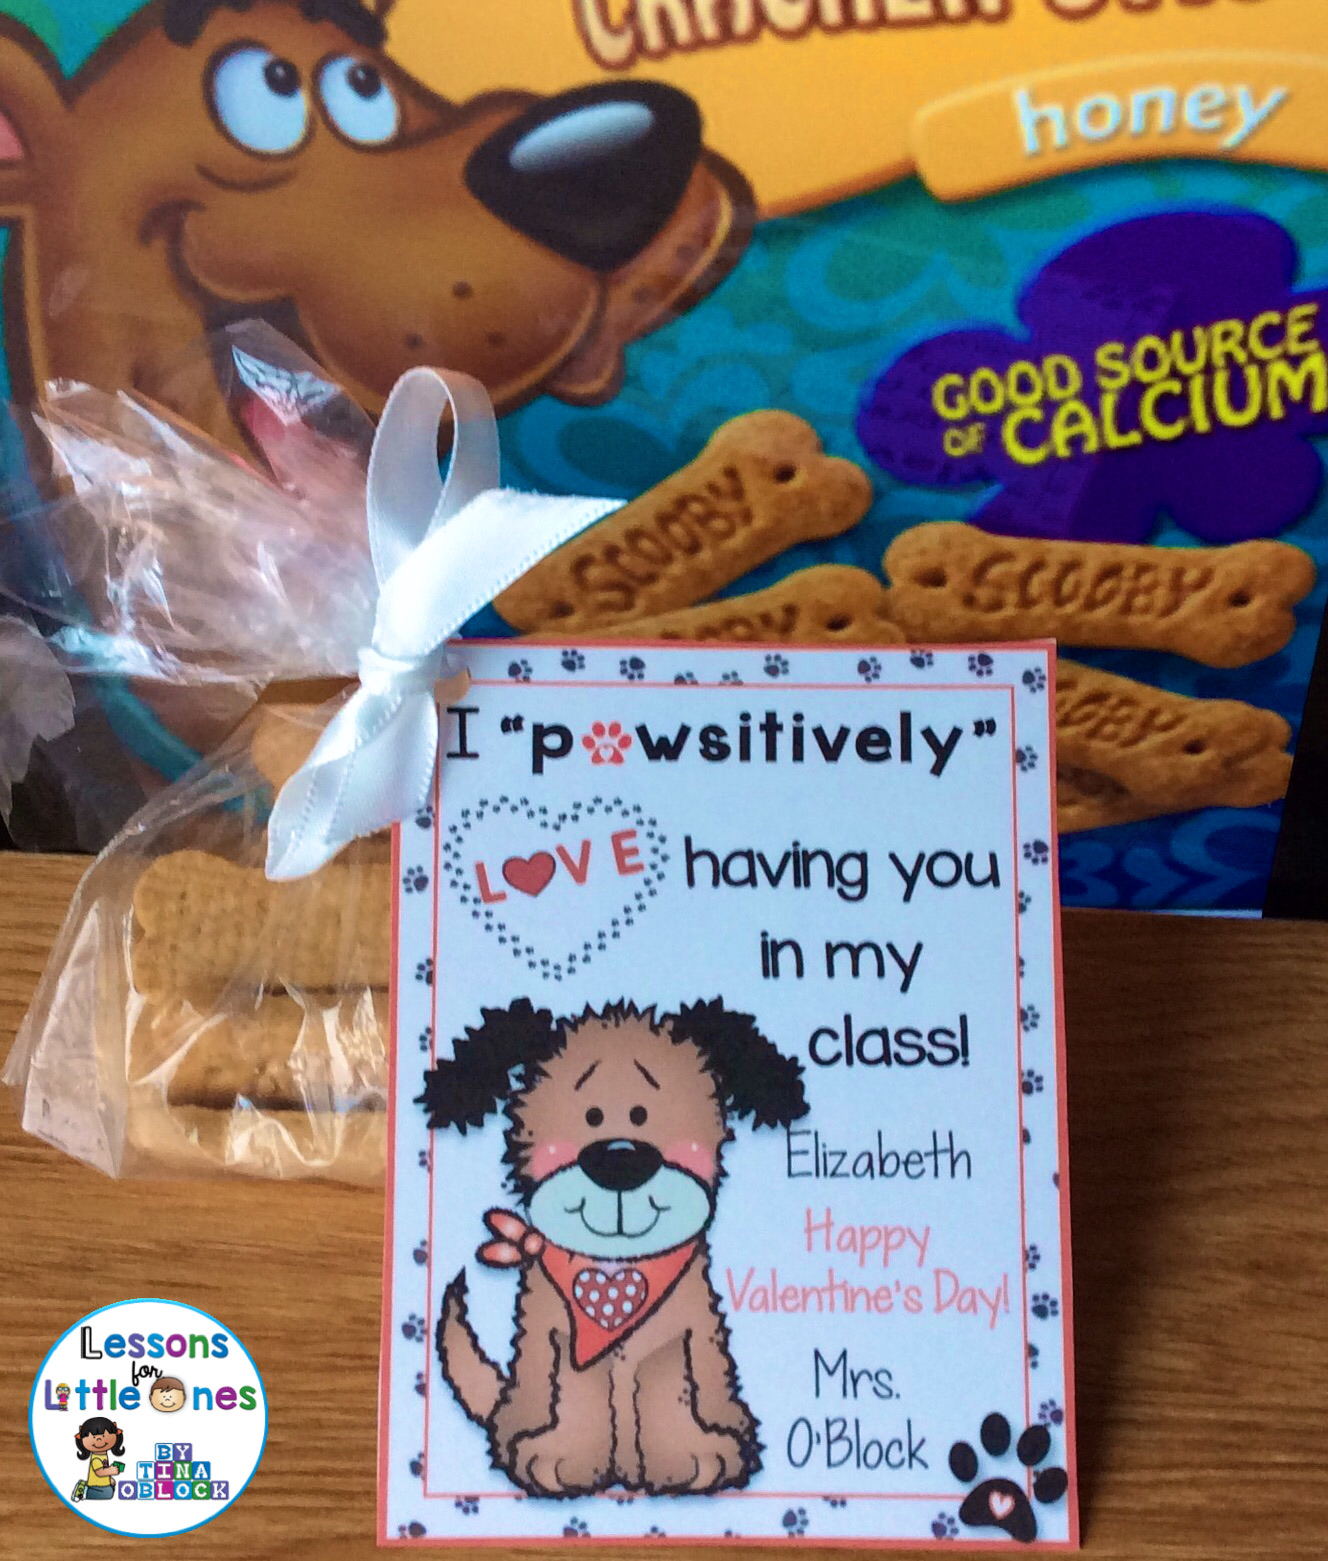 Dog Valentine's Day student gifts